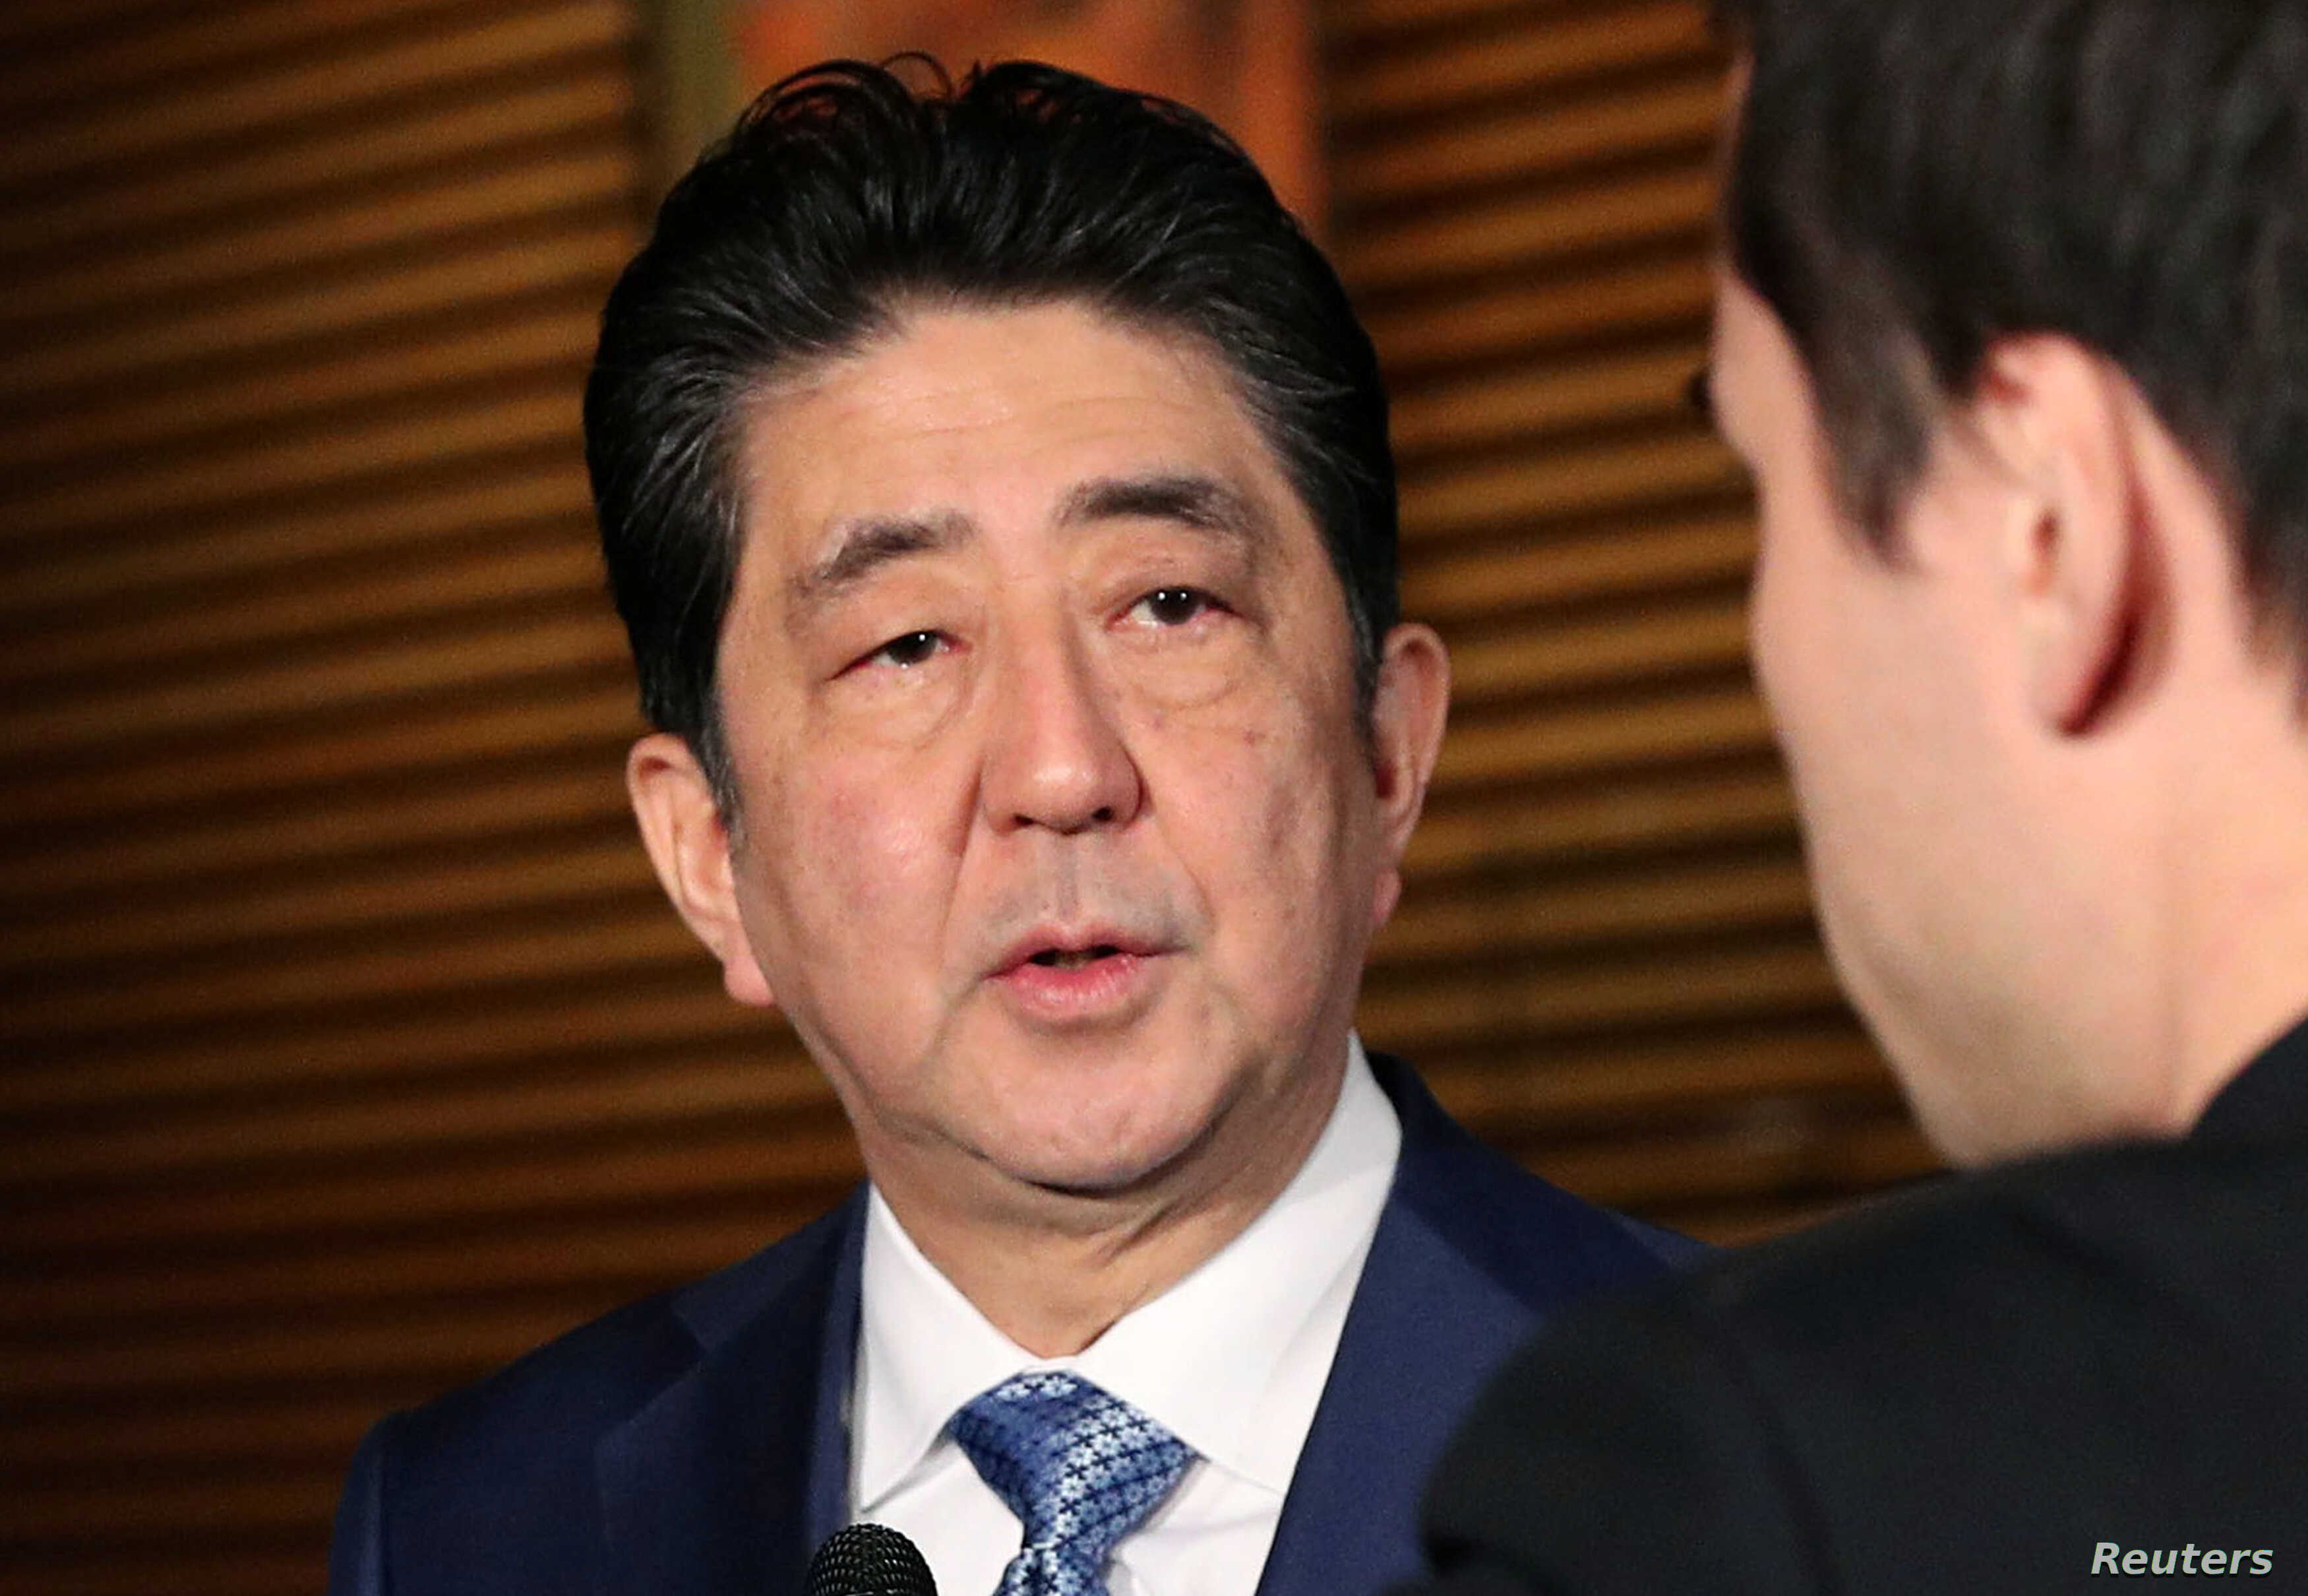 Japan's Prime Minister Shinzo Abe speaks to reporters about North Korea's missile launch, in Tokyo, Japan in this photo taken by Kyodo, Nov. 29, 2017.